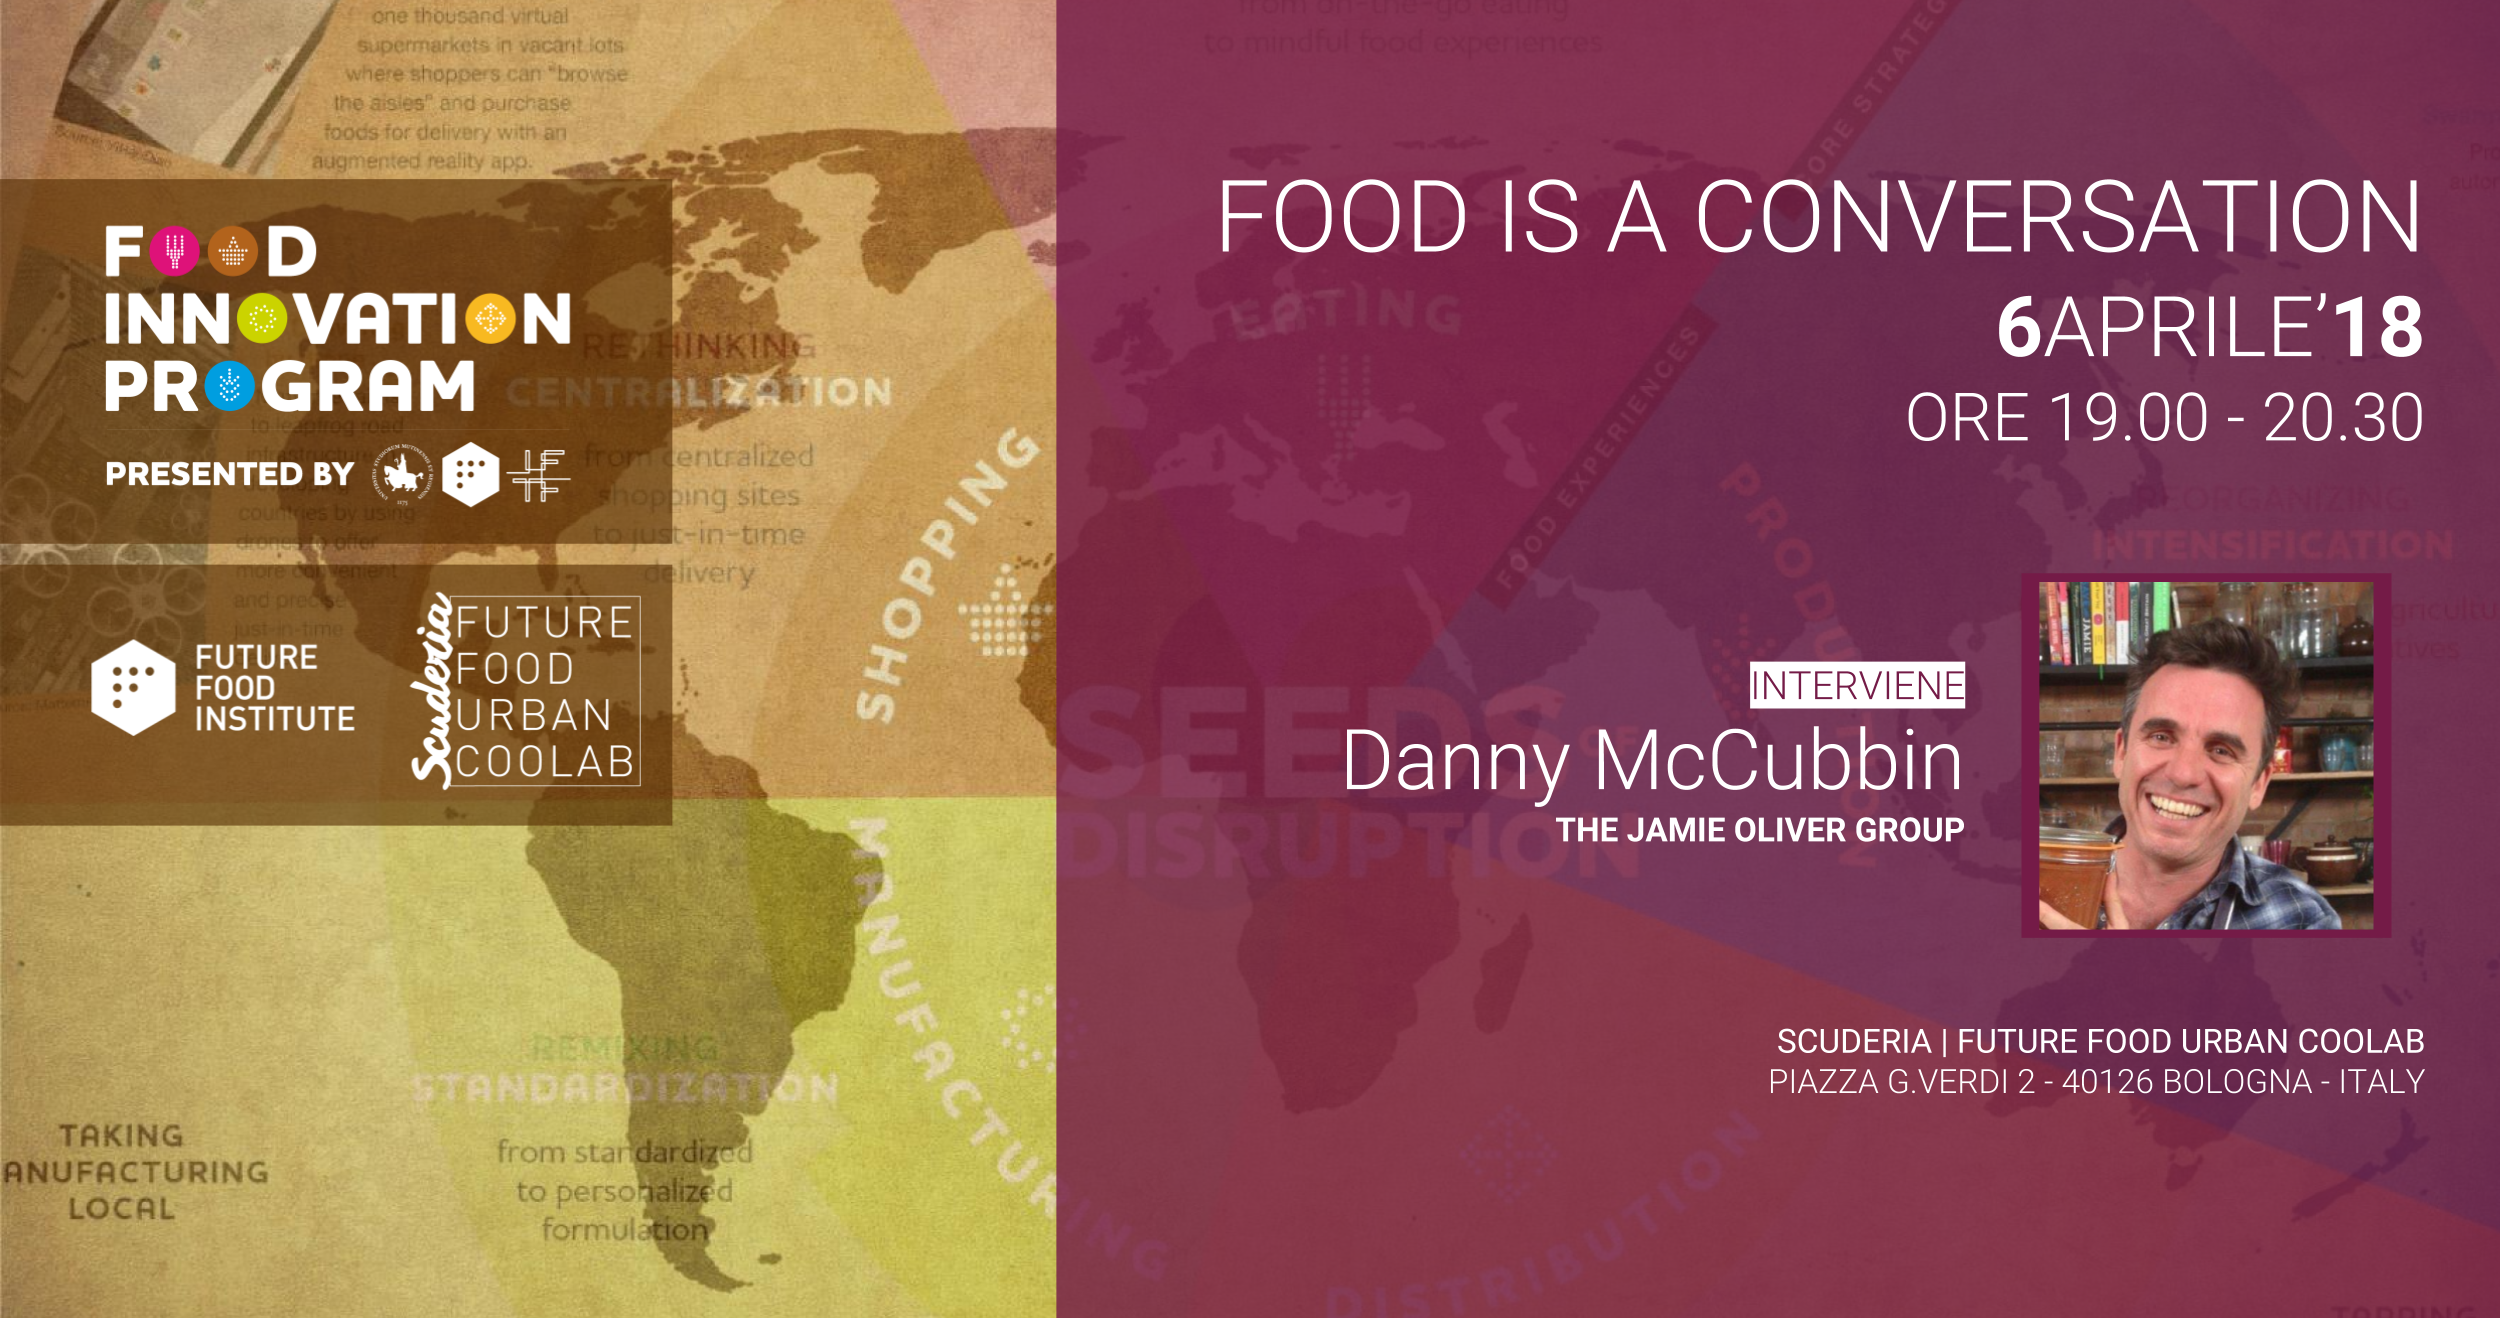 Food is a conversation con Danny McCubbin